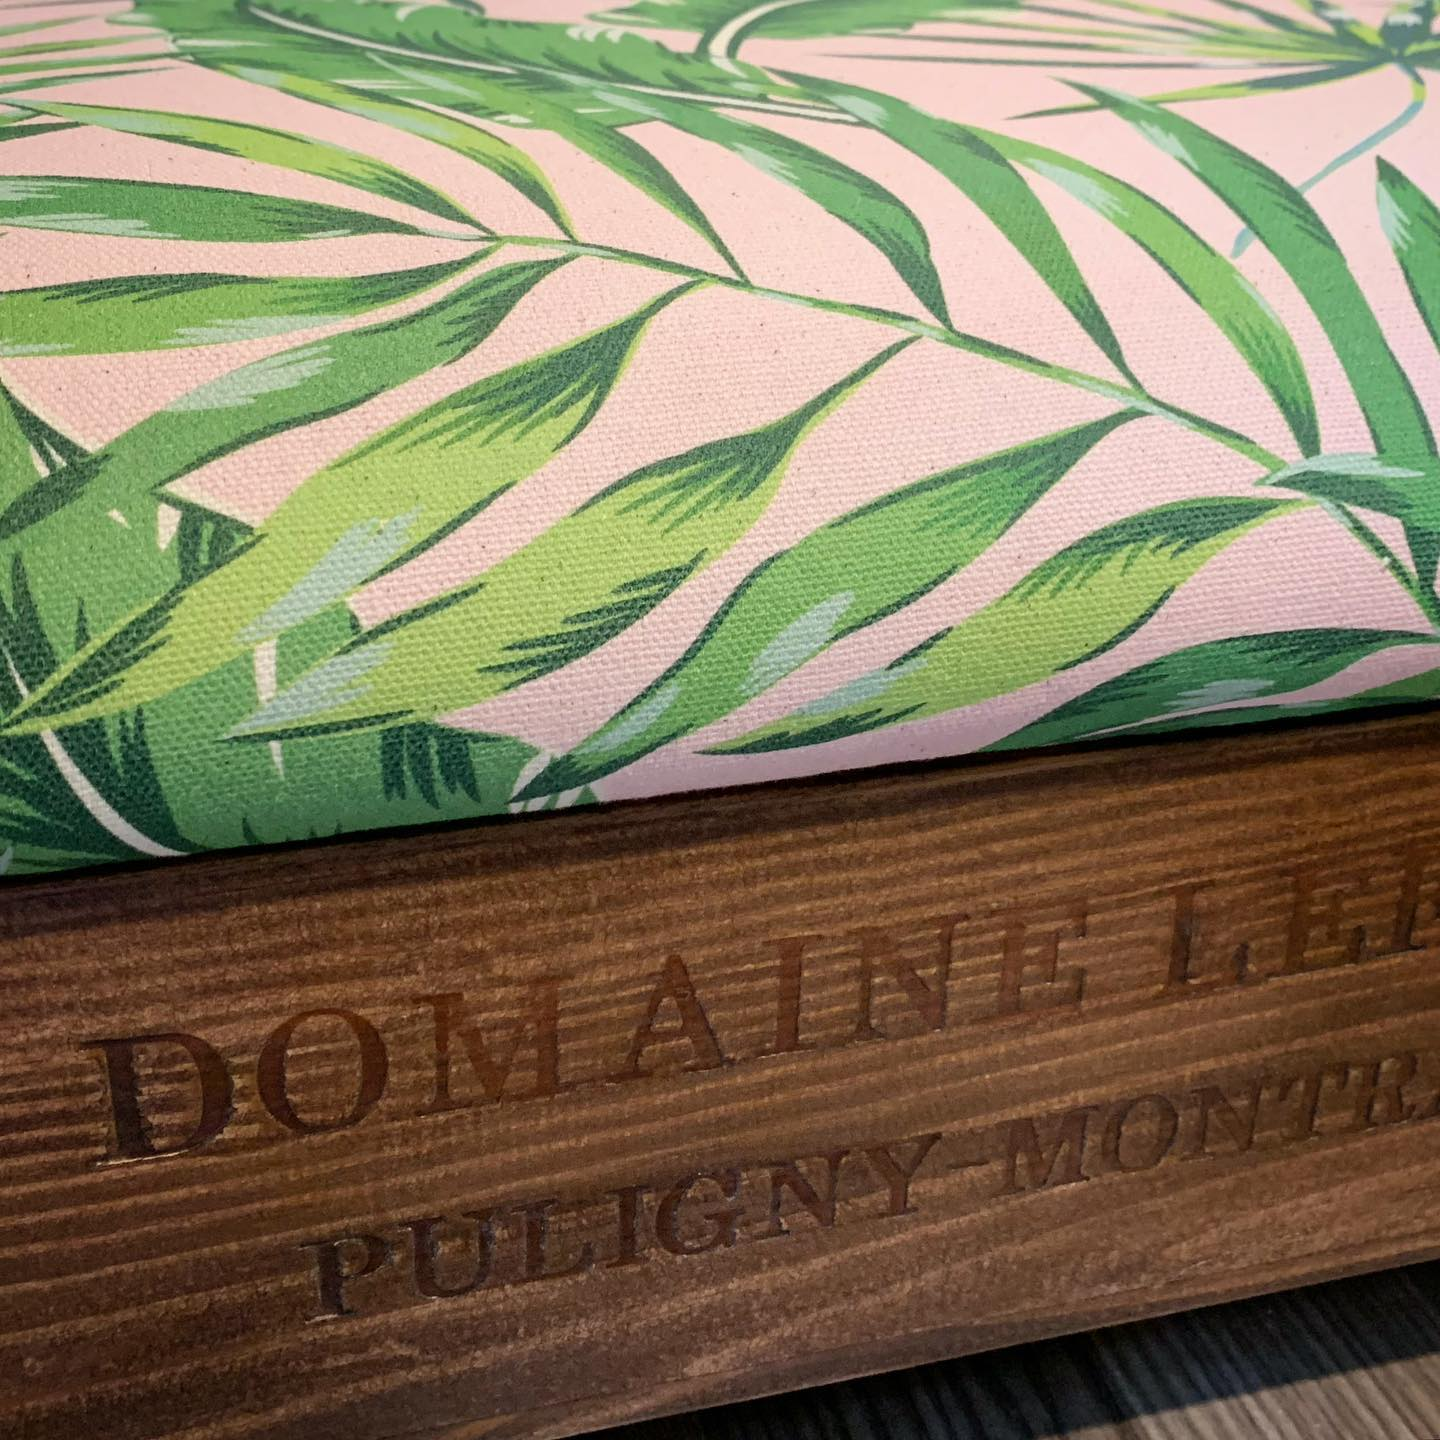 A little peek at our latest bespoke ottoman...#botanical #ottoman #bespoke #unique #handcrafted #homedecor #gingerandtweed